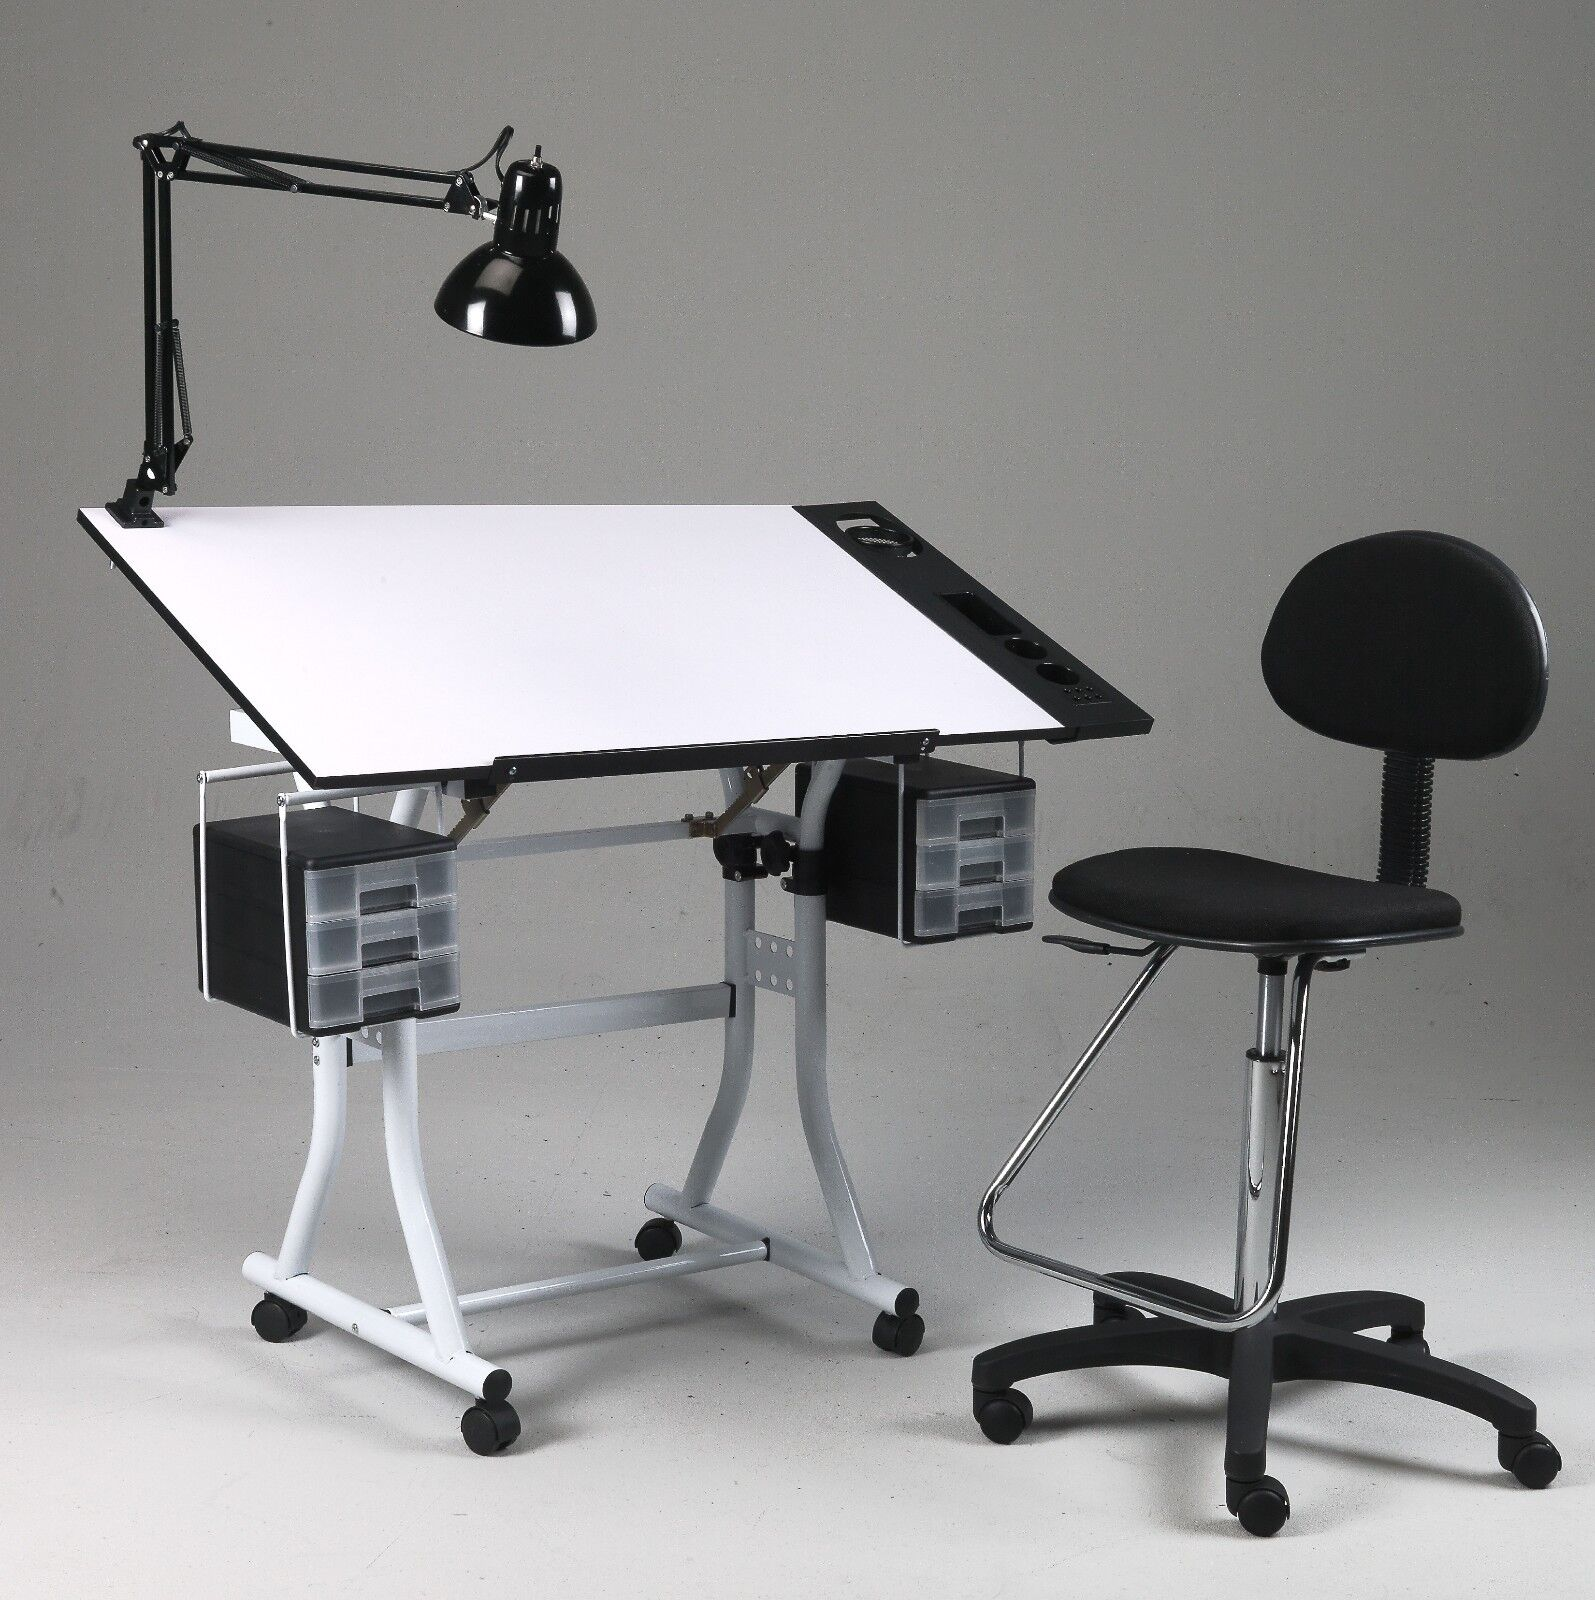 drafting table chair height used and chairs for sale drawing art hobby craft desk w drawers